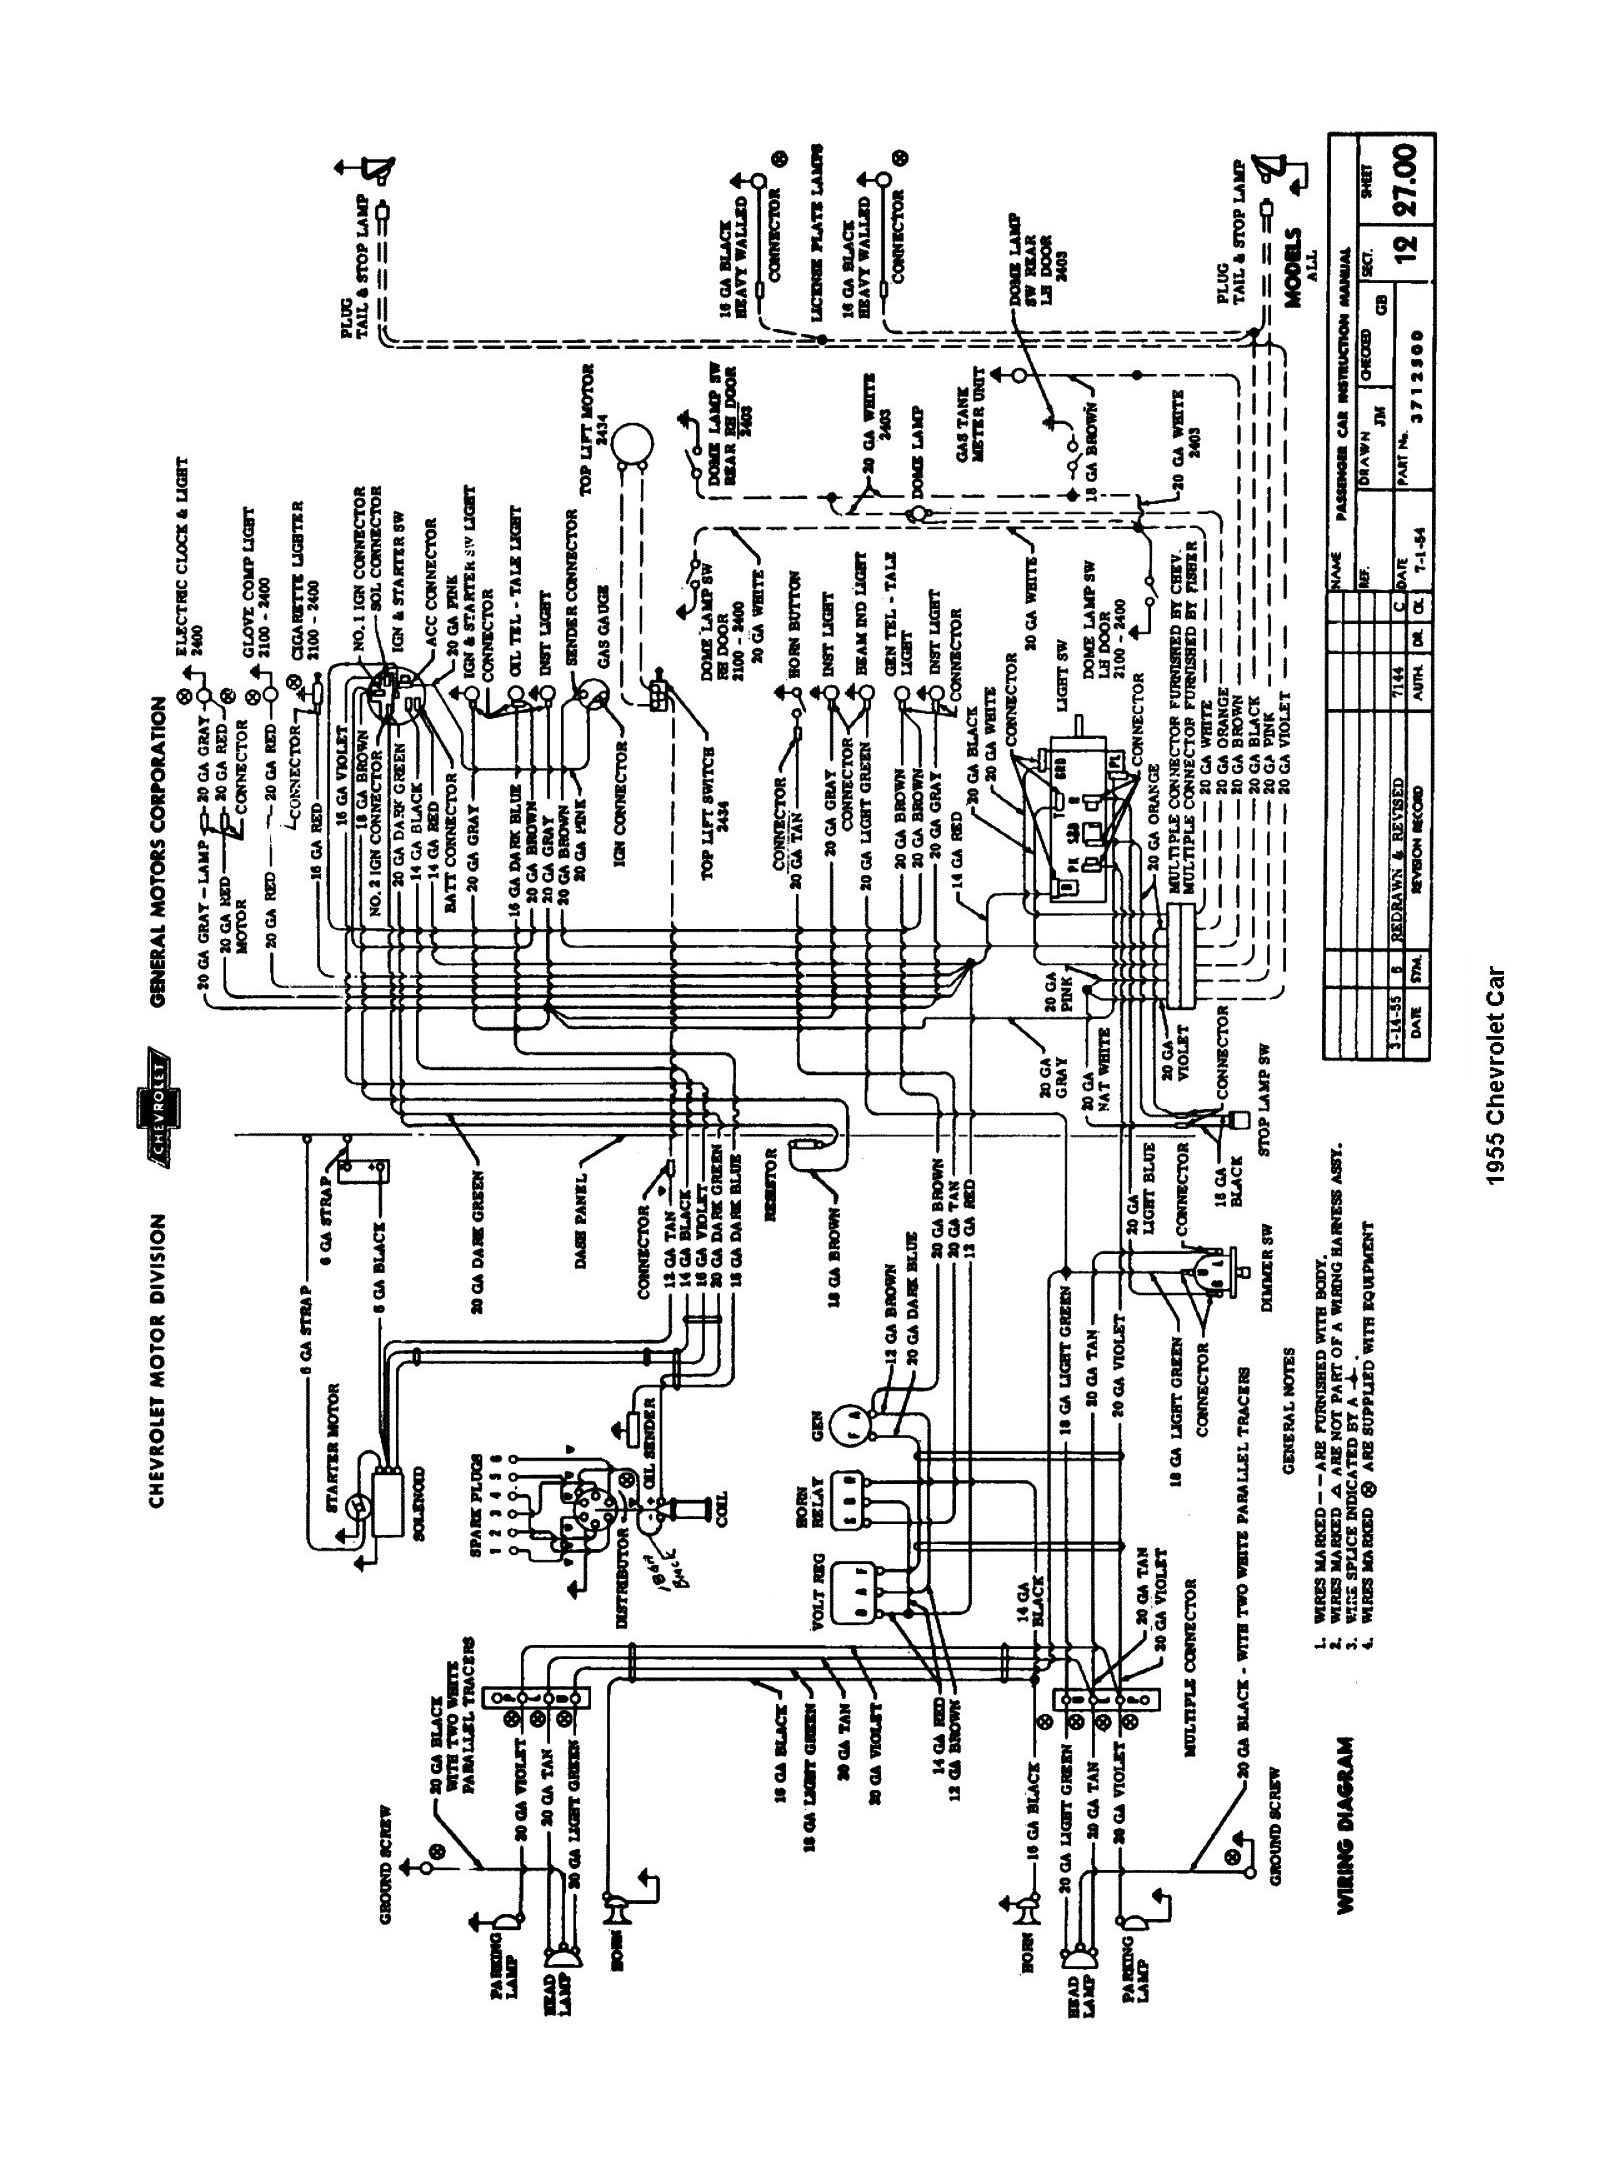 [WRG-5531] 1960 Oldsmobile Wiring Diagram